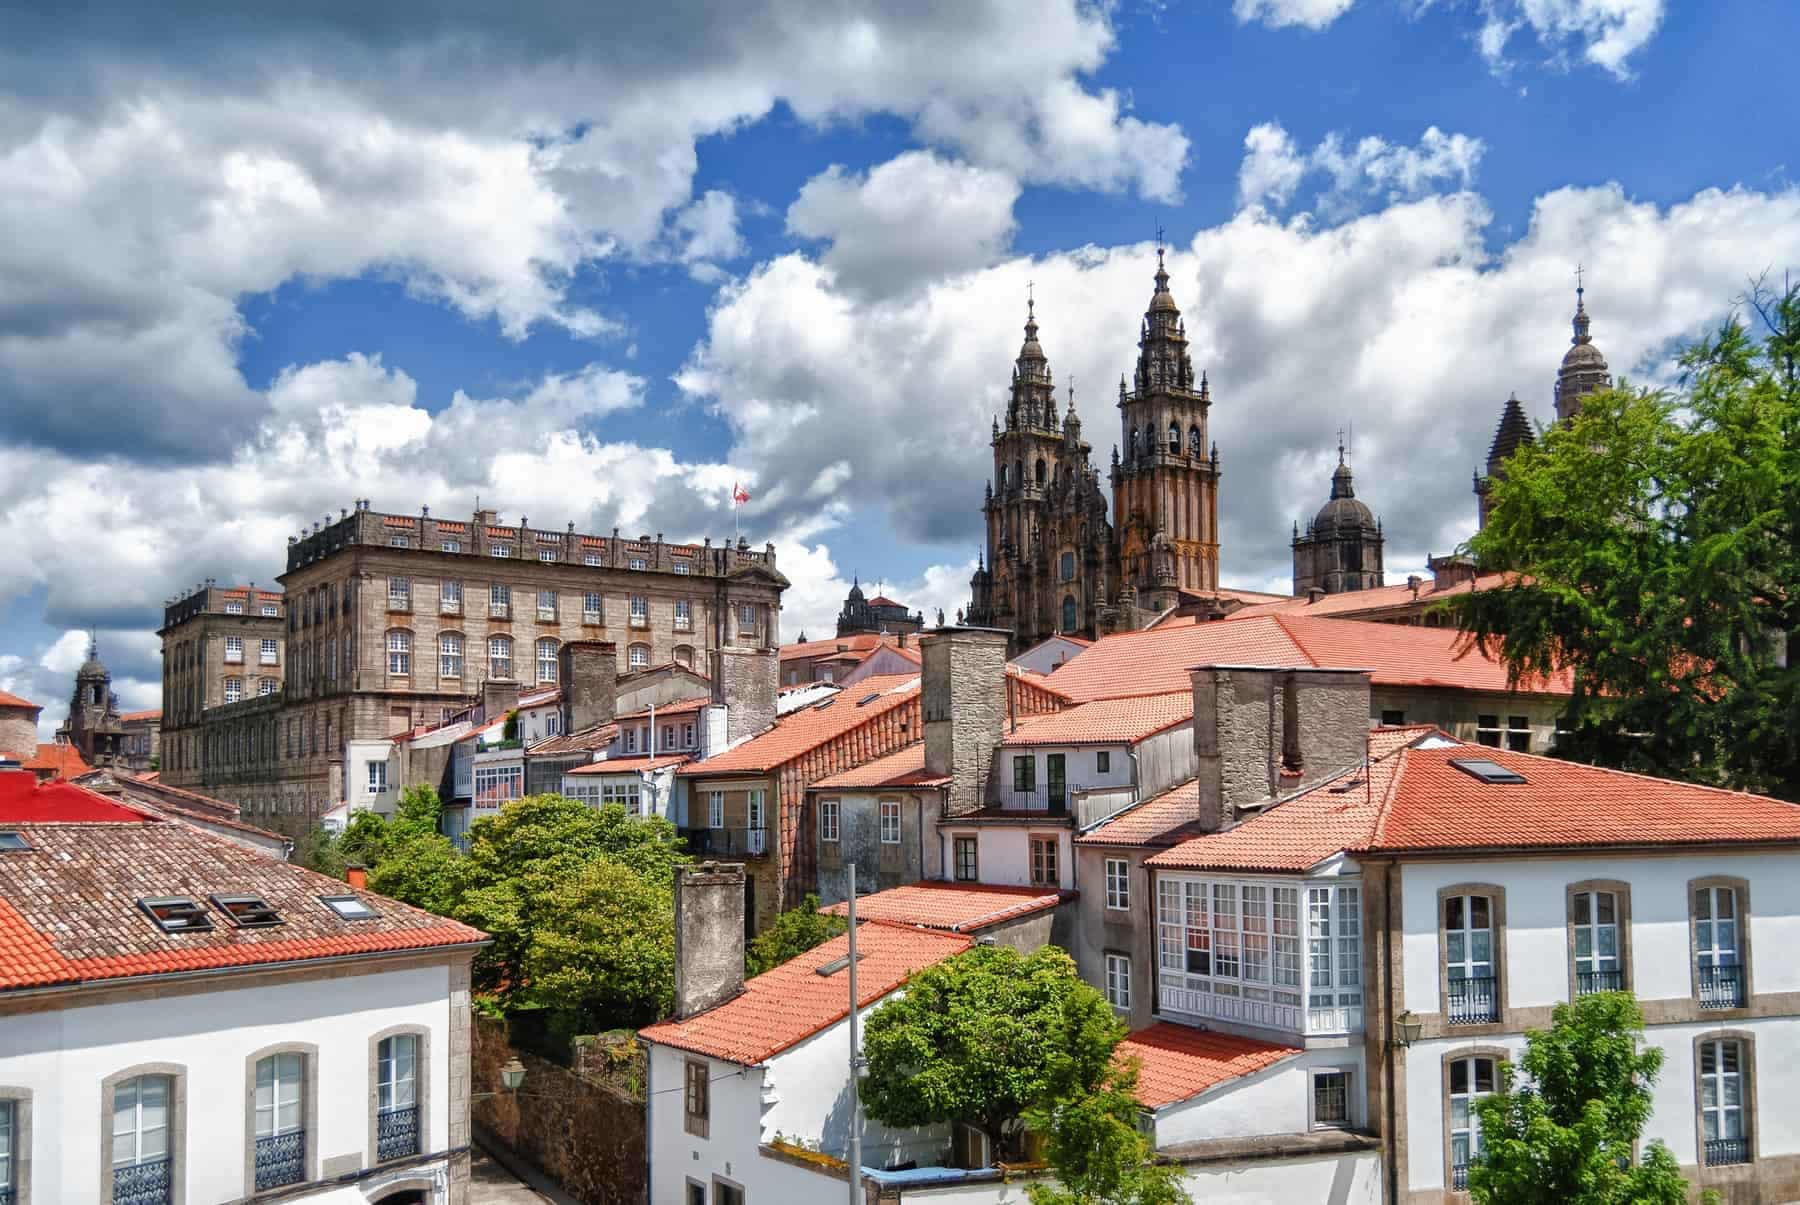 The Cathedral of Santiago de Compostela is one of the greatest pilgrimage destinations for the Catholic religion